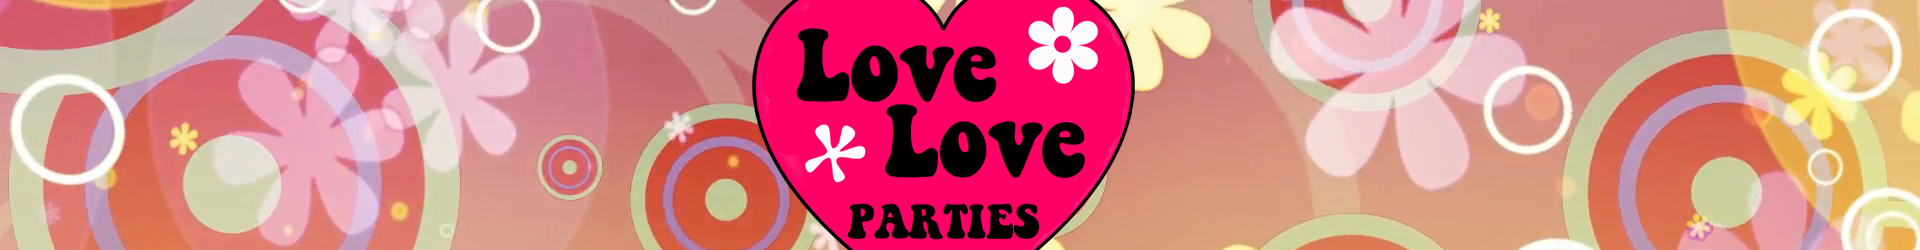 Love Love Parties joins Cloud 9 Parties